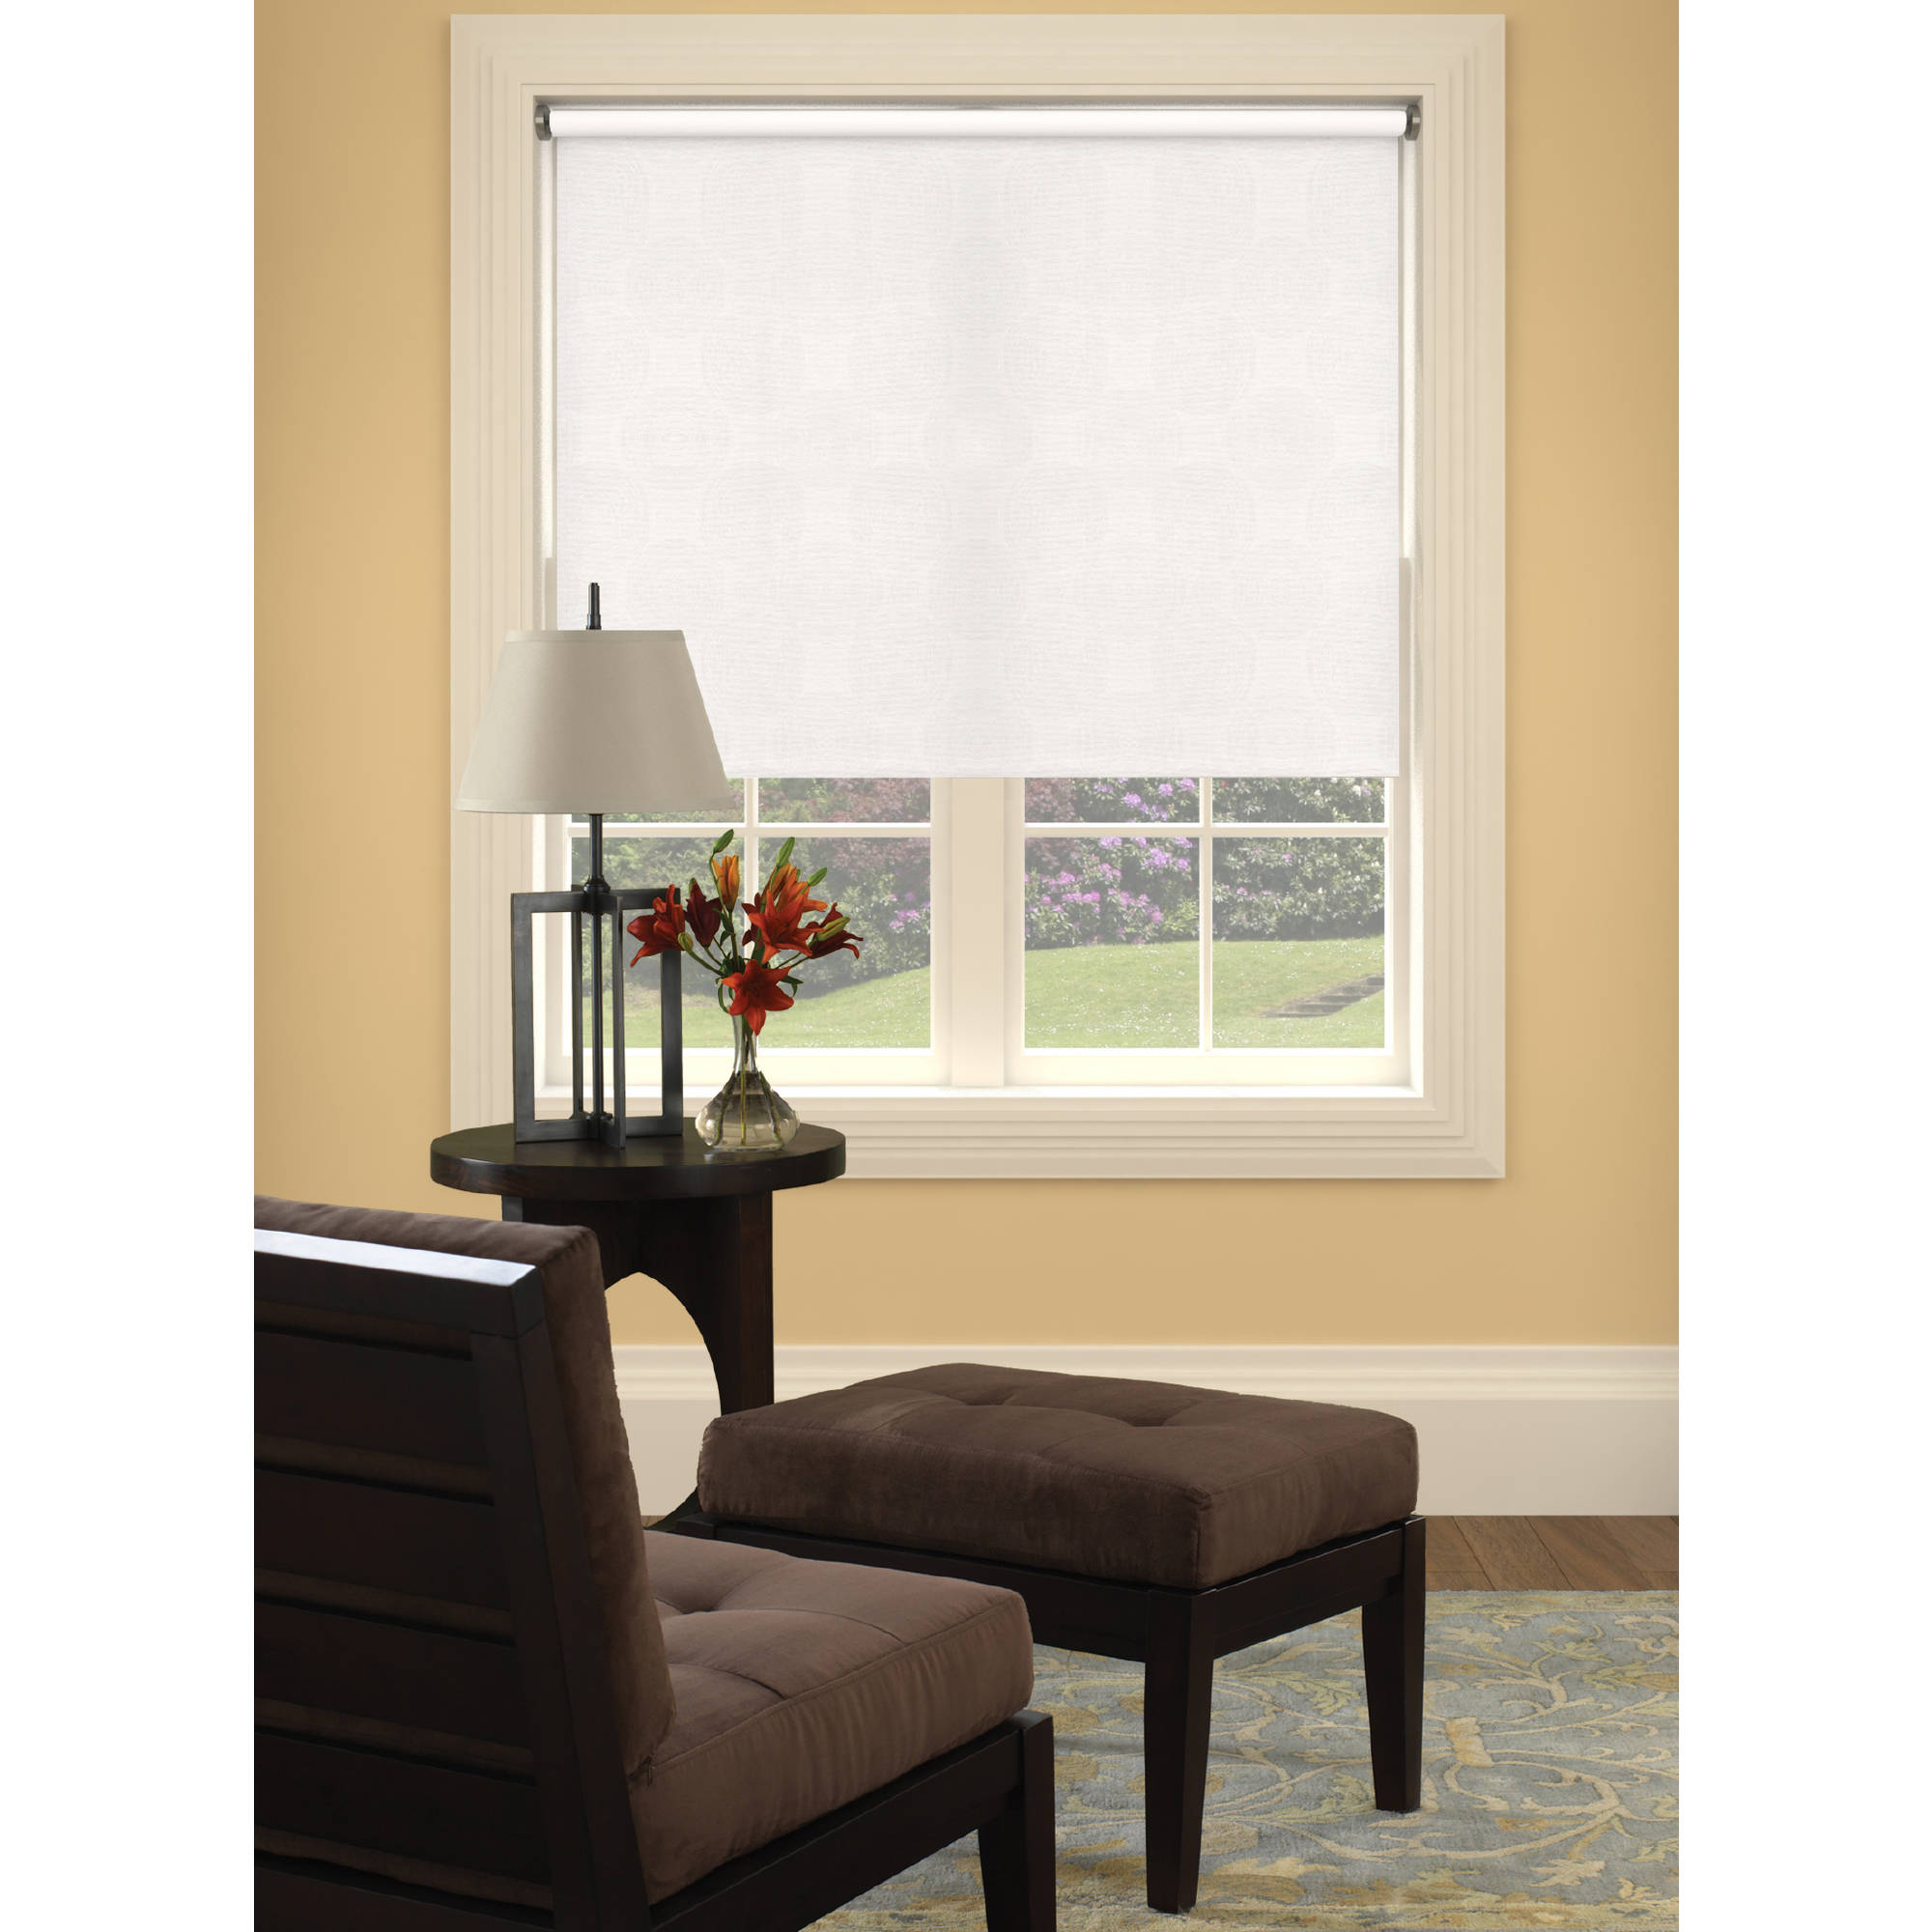 Bali Size-at-Home Vinyl Roller Shade Available In Multiple Colors And Sizes